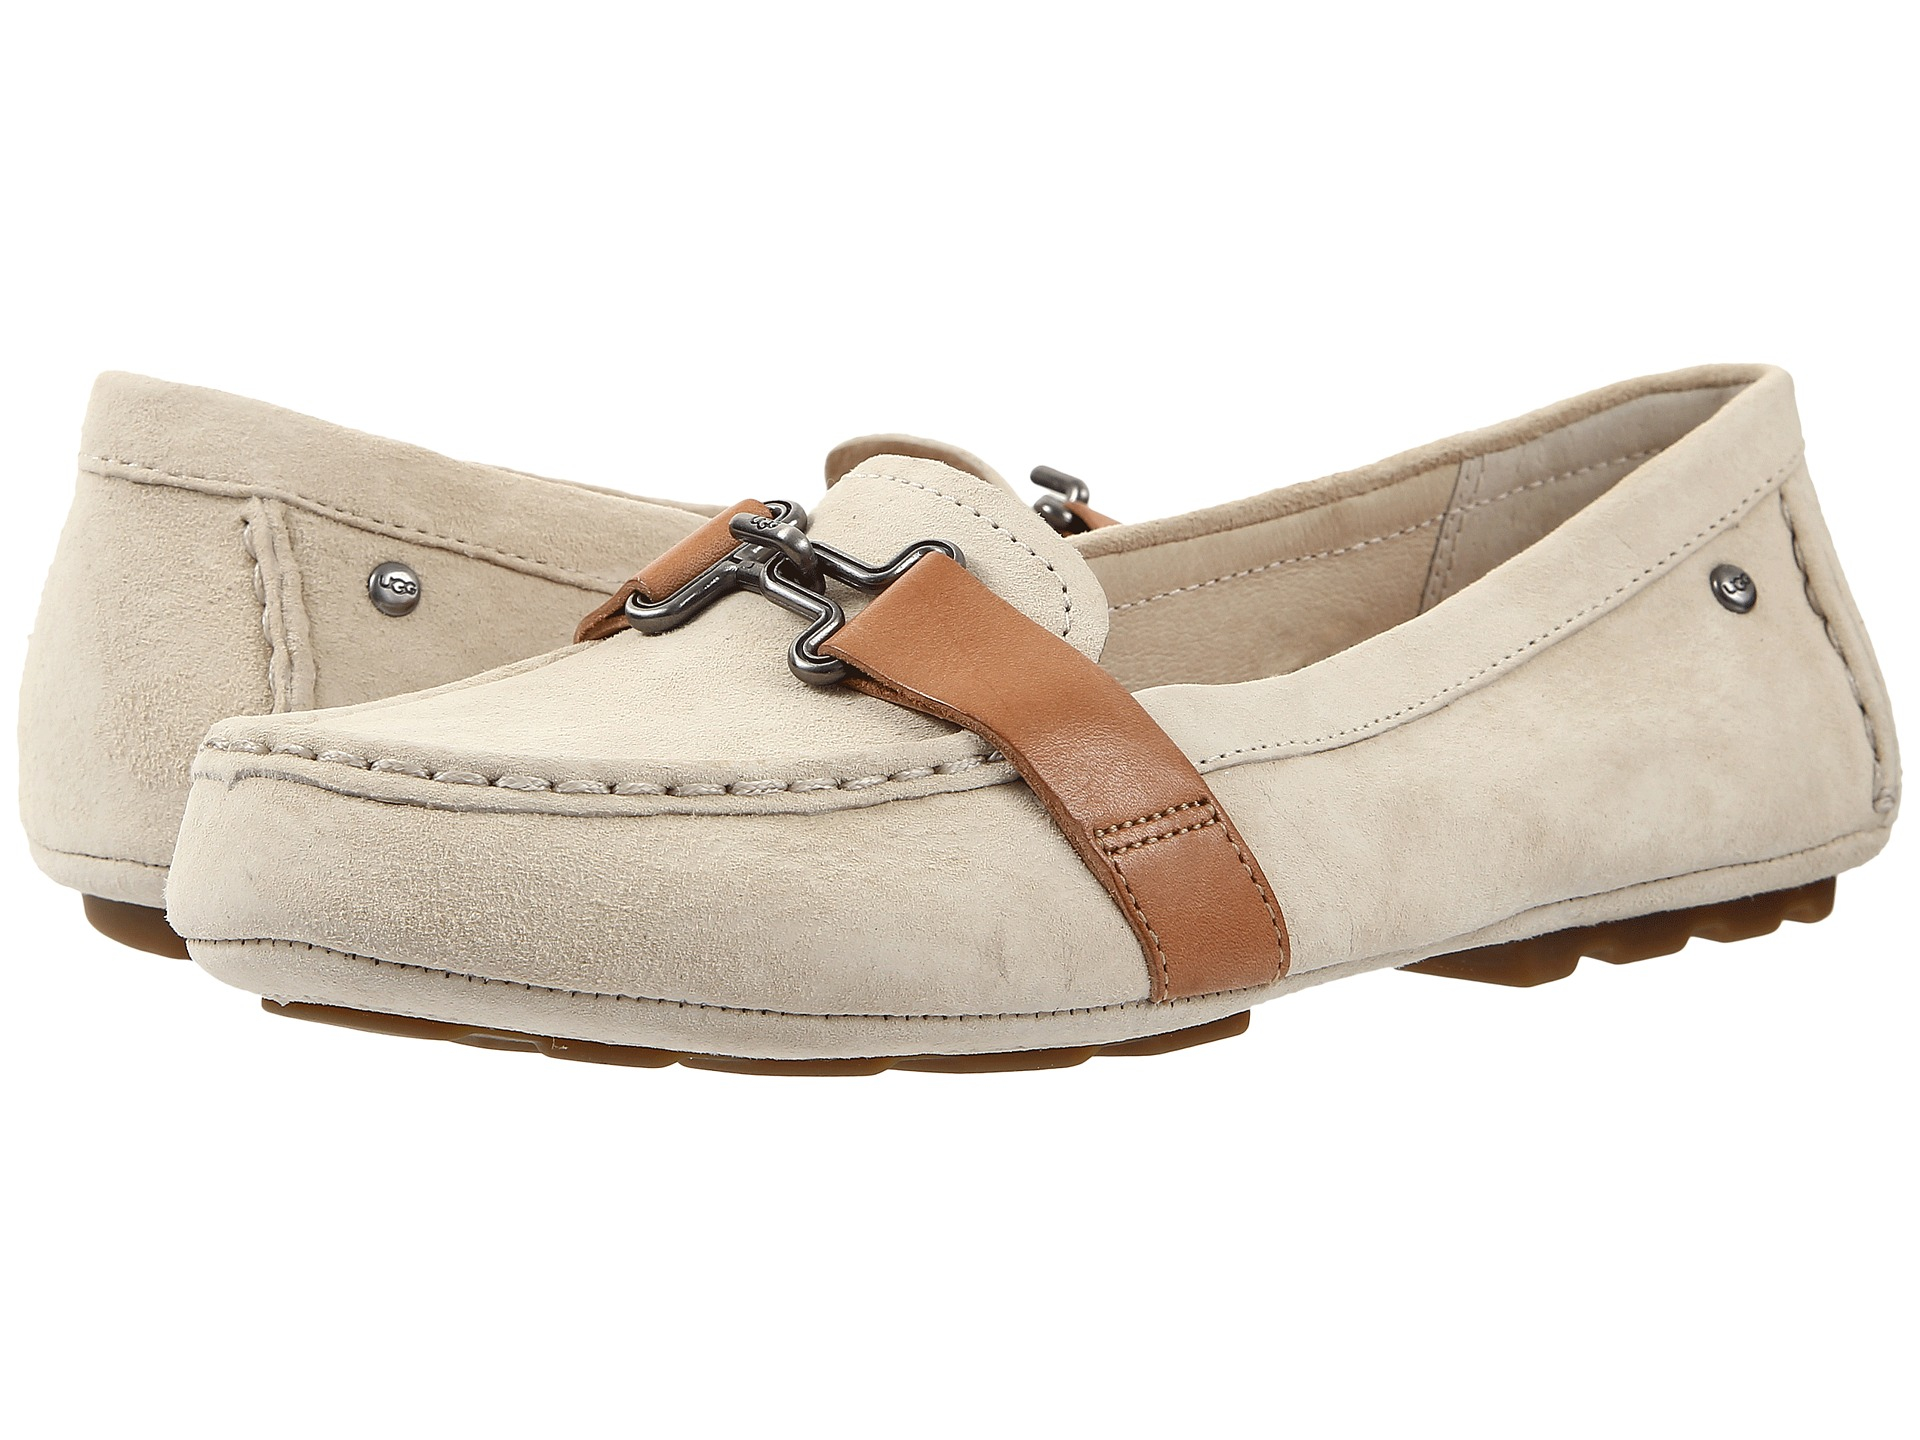 Womens Shoes UGG Aven Antique White